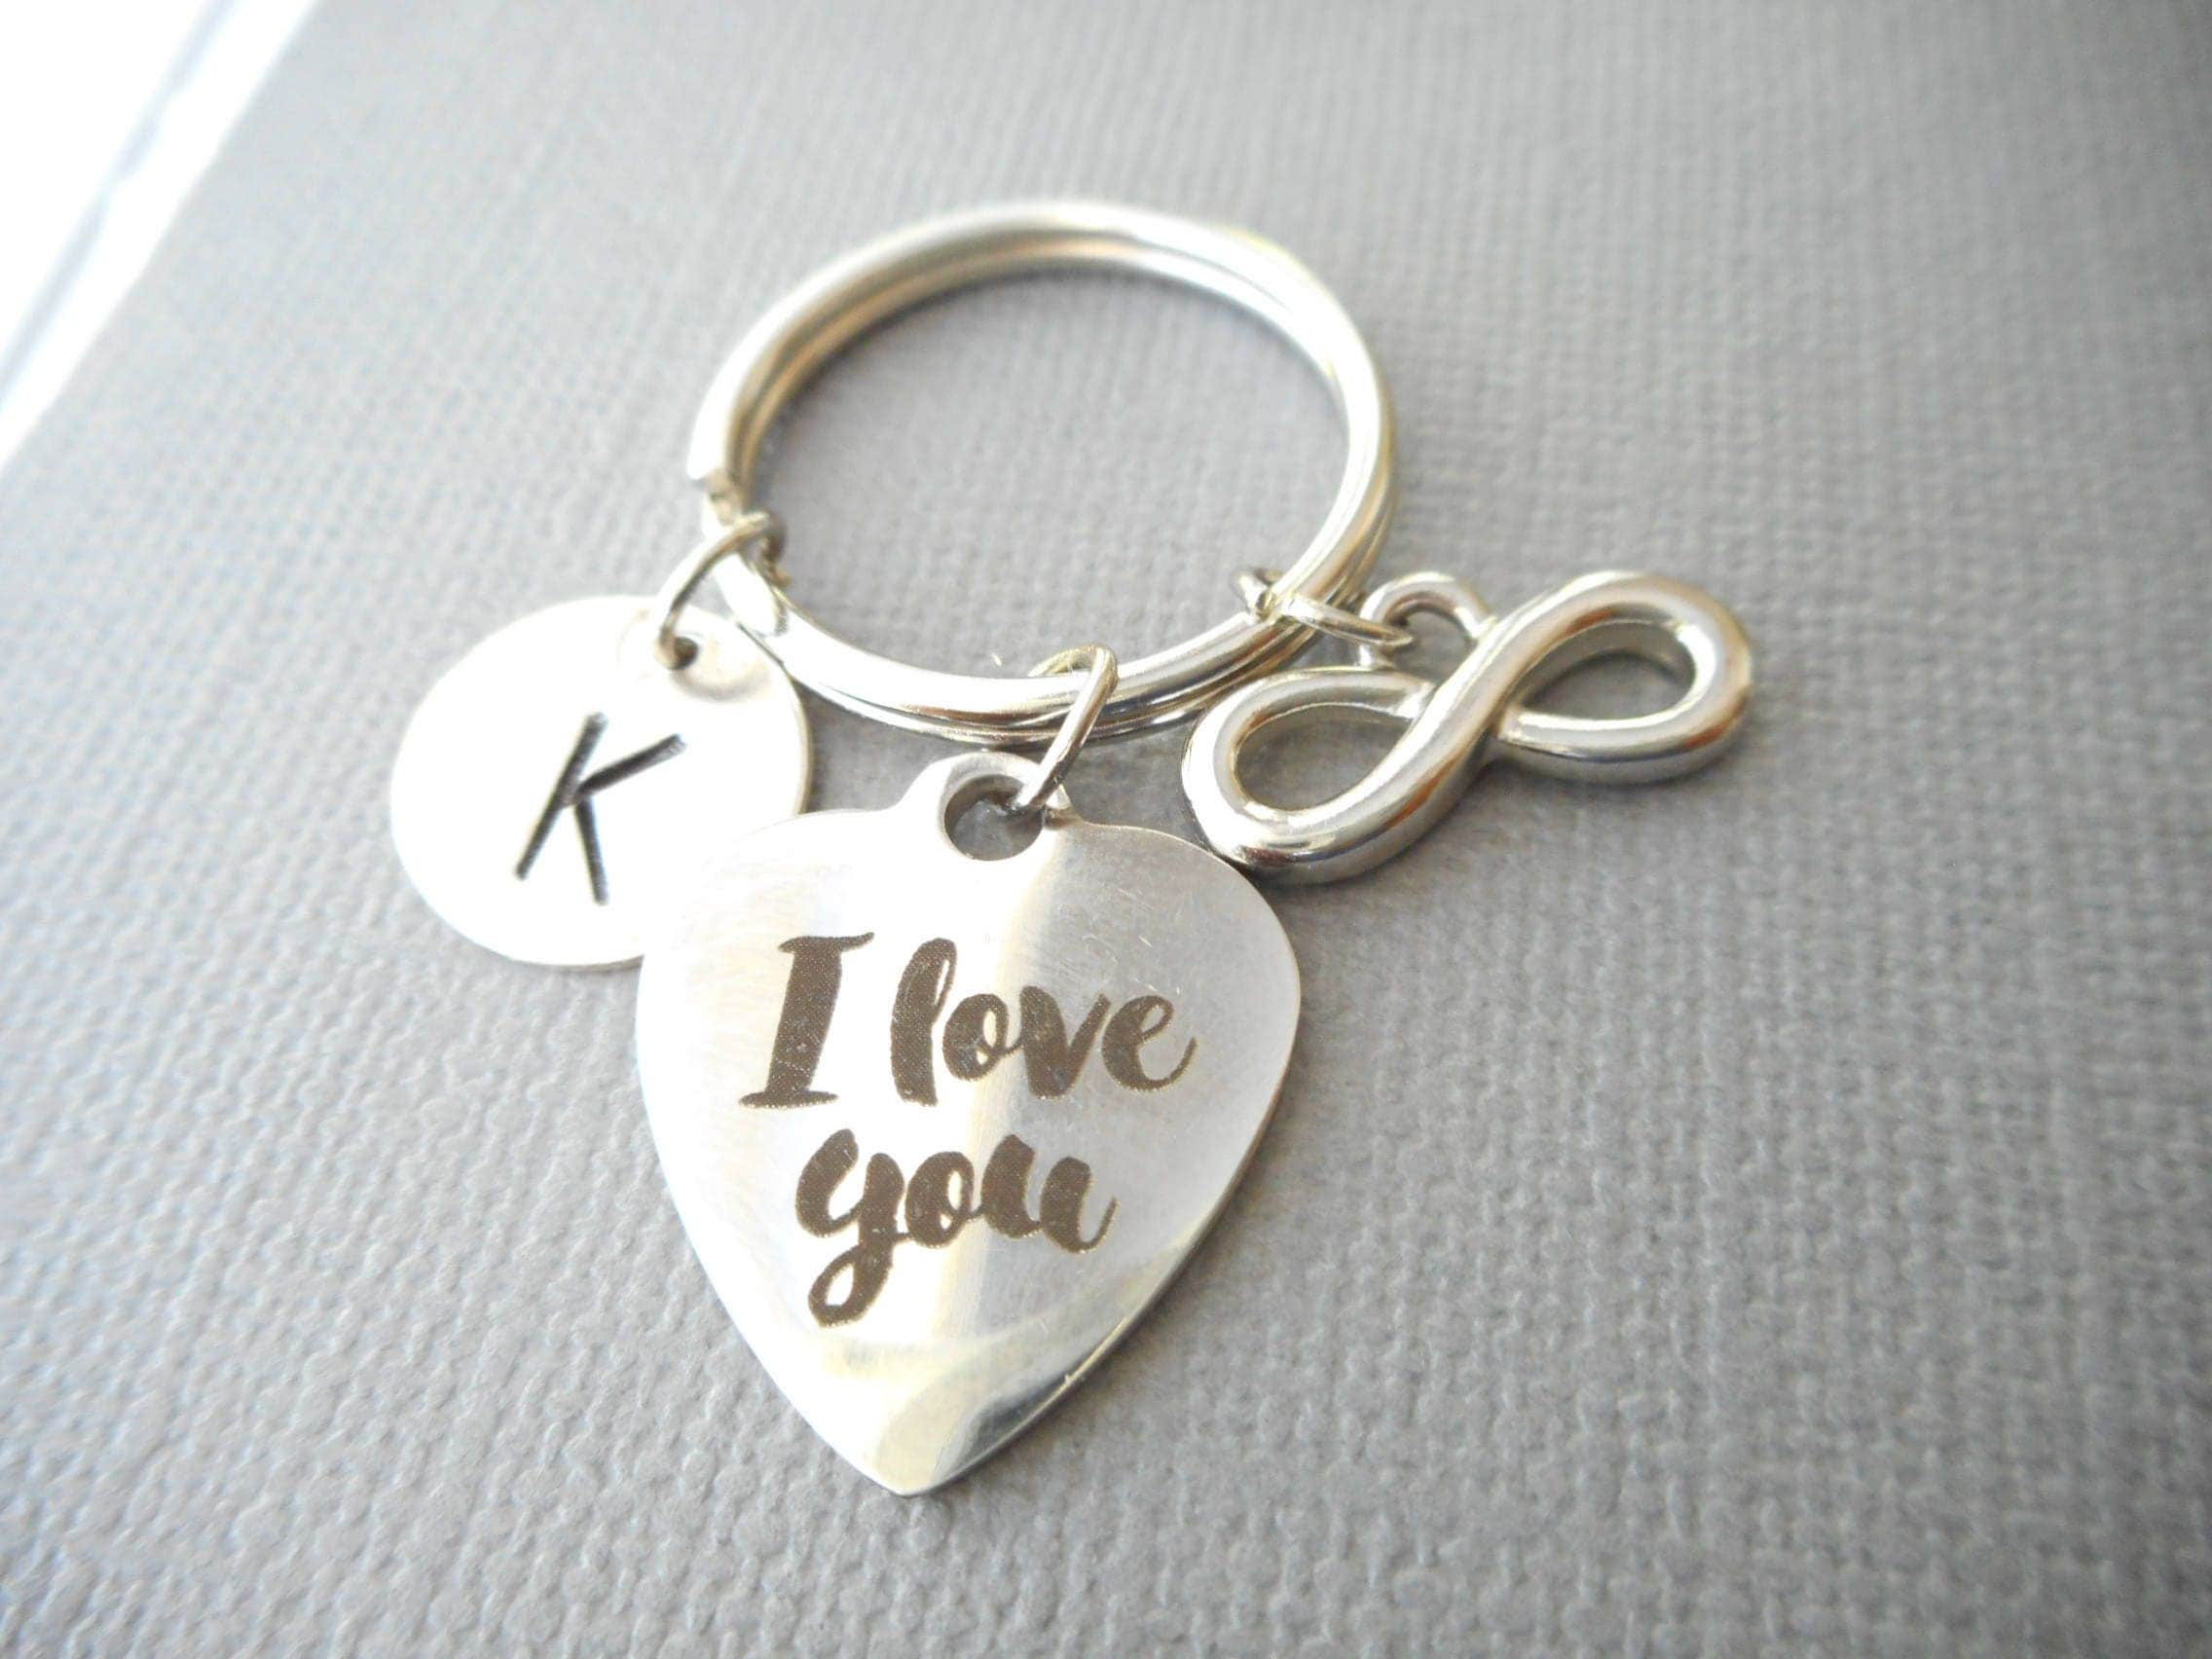 I love you infinity initial keychain gift for girlfriend i love you infinity initial keychain gift for girlfriend birthday gift girlfriend negle Images